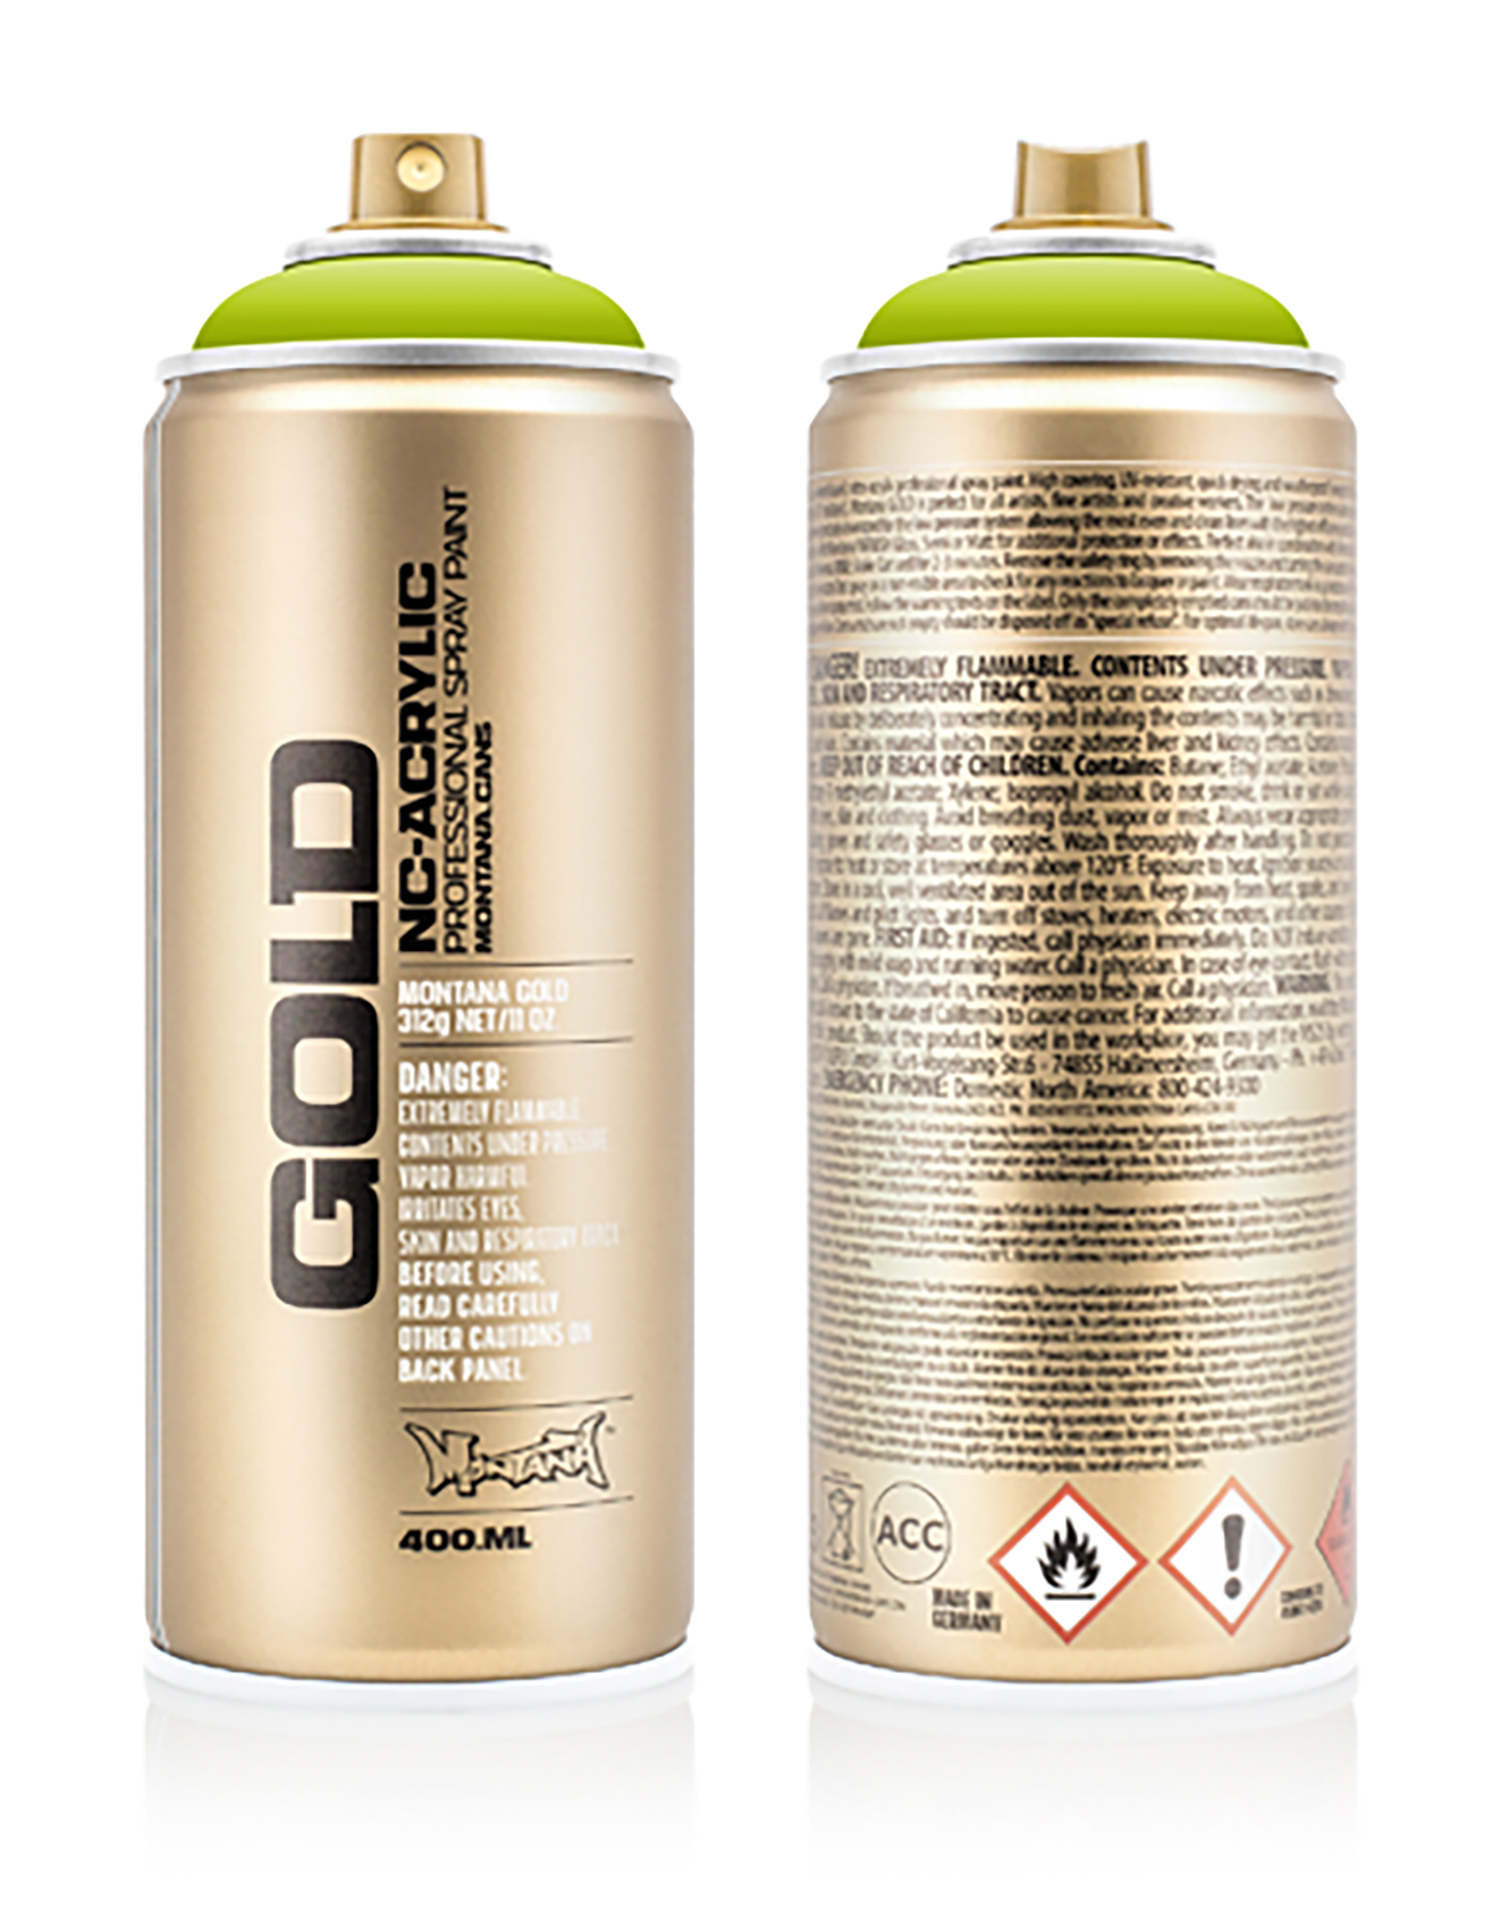 MONTANA-GOLD-SPRAY-400ML-G-6030